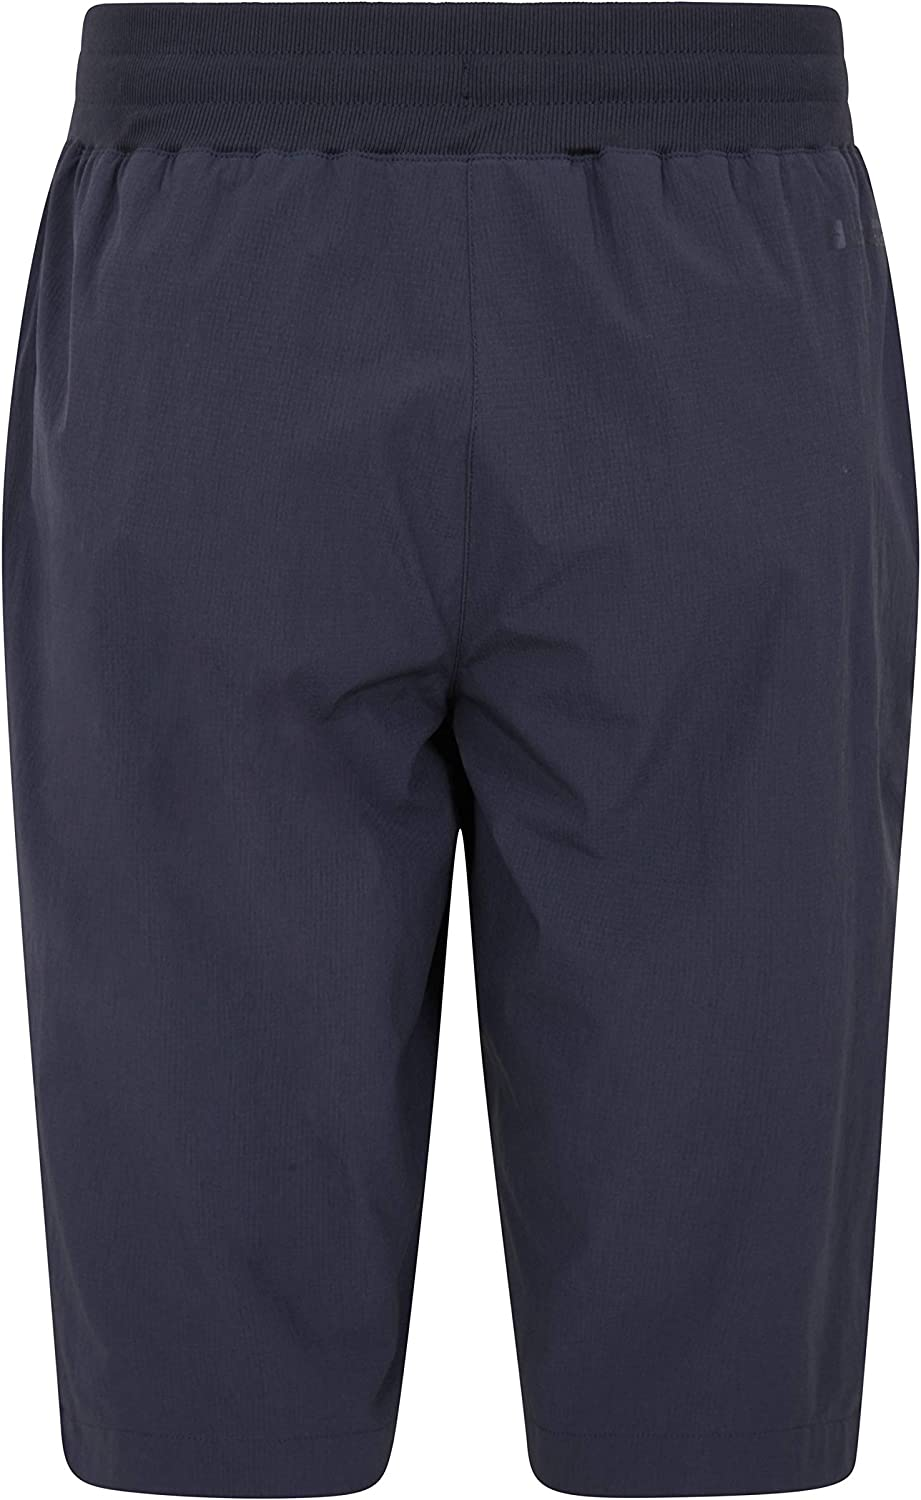 UV Protected Sports /& Travelling Lightweight Trousers Quick Drying Ladies Trek Pants Mountain Warehouse Explorer Womens Long Shorts Camping Best for Hiking